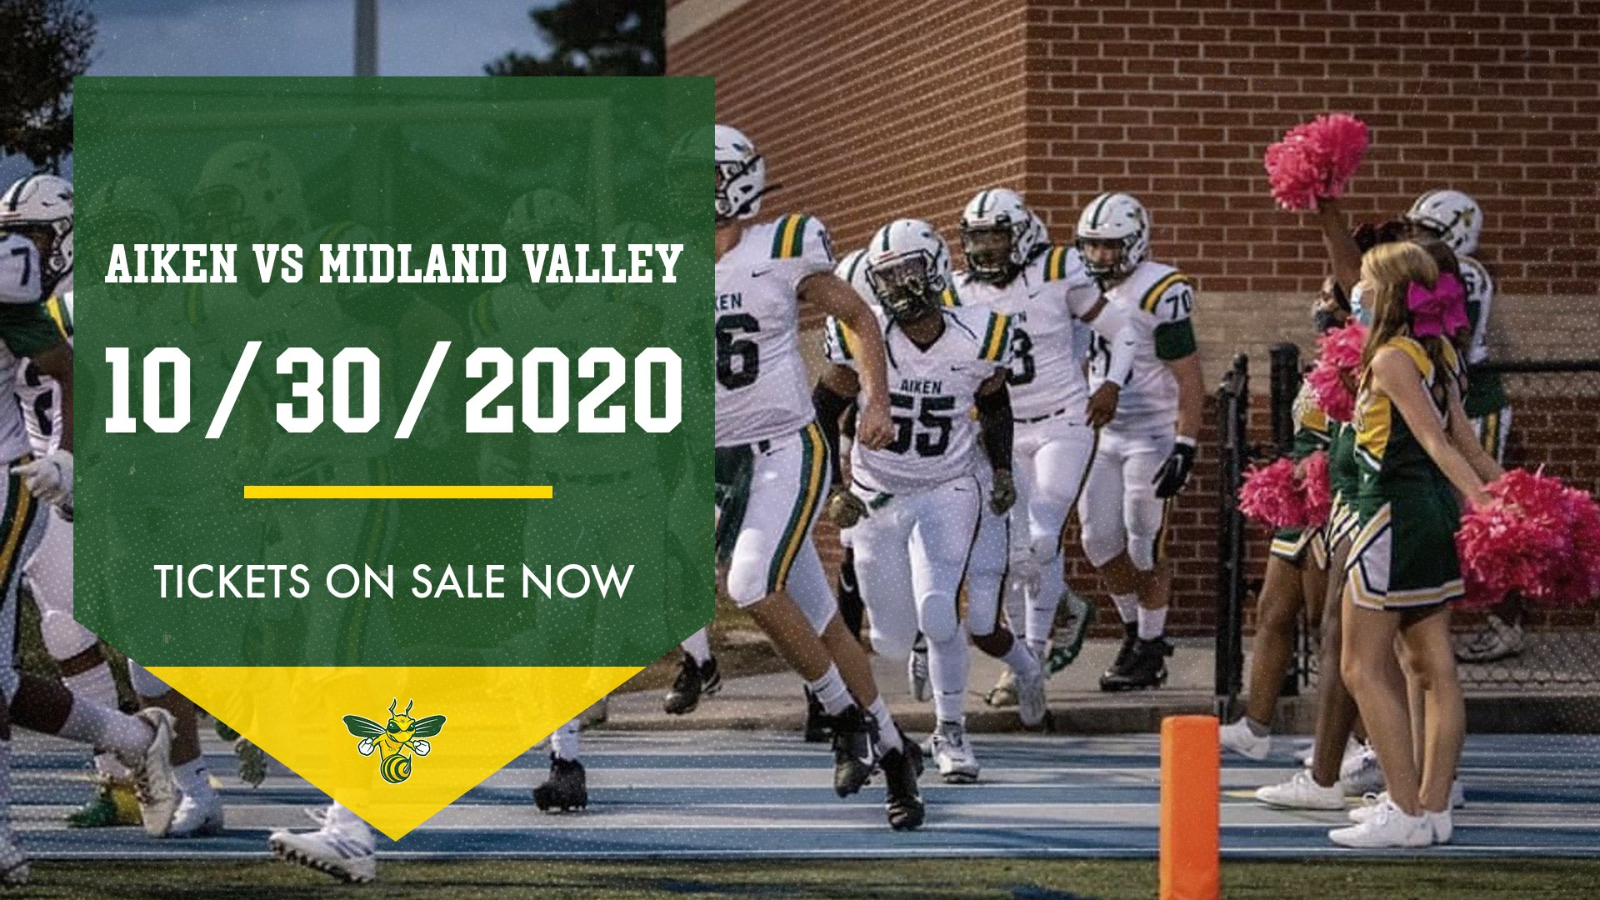 Homecoming vs Midland Valley 10/30/2020!